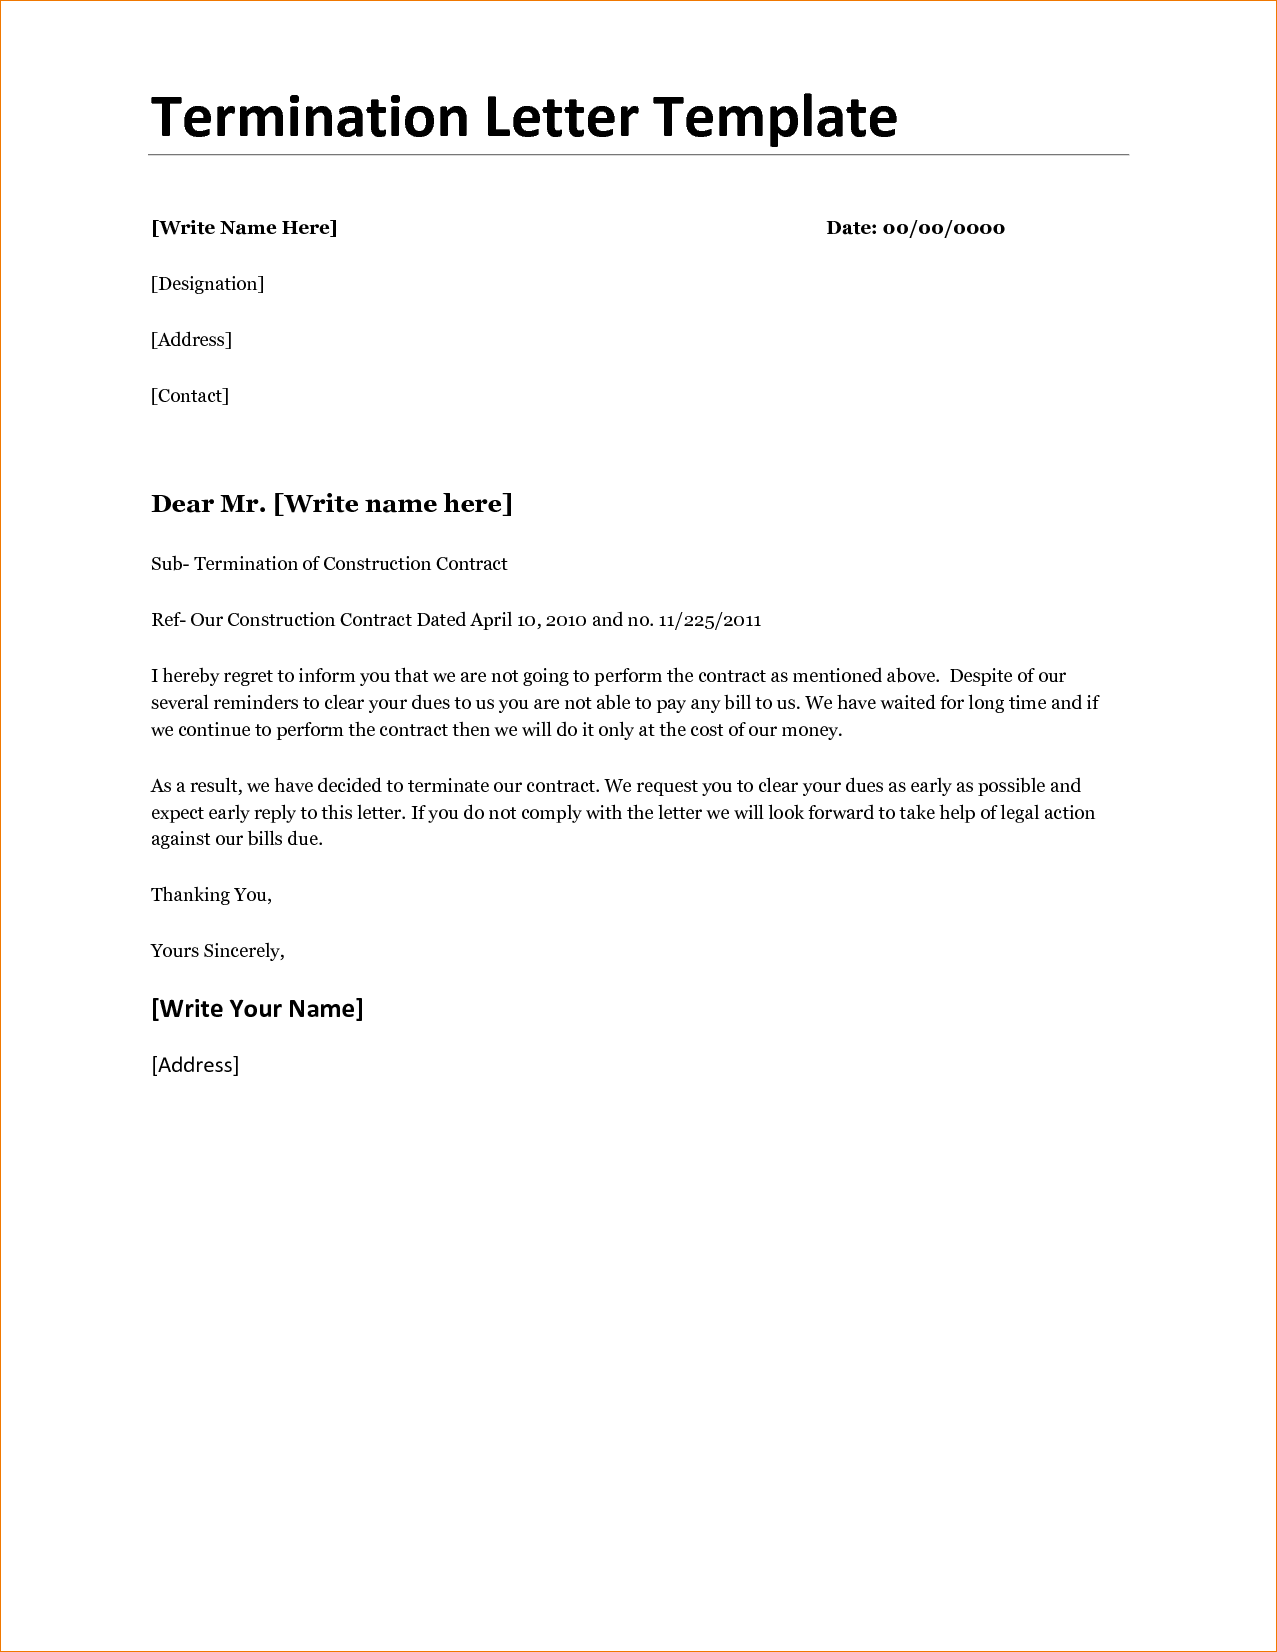 letter sample for job cancellation contract termination free